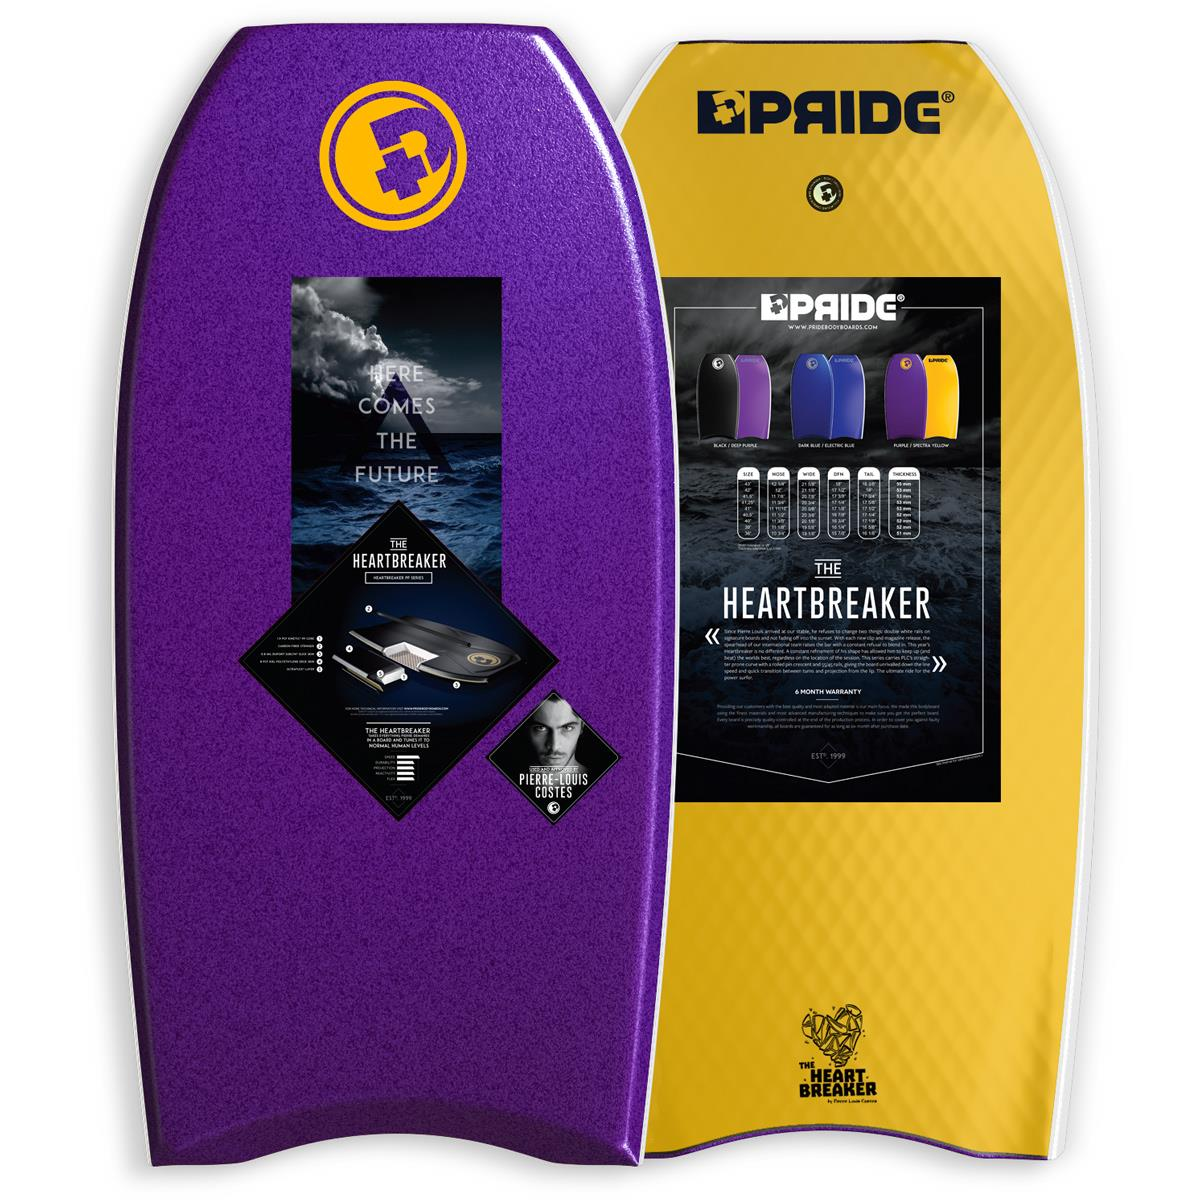 Www.twenga.de Pride Bodyboards Pierre Louis Costes